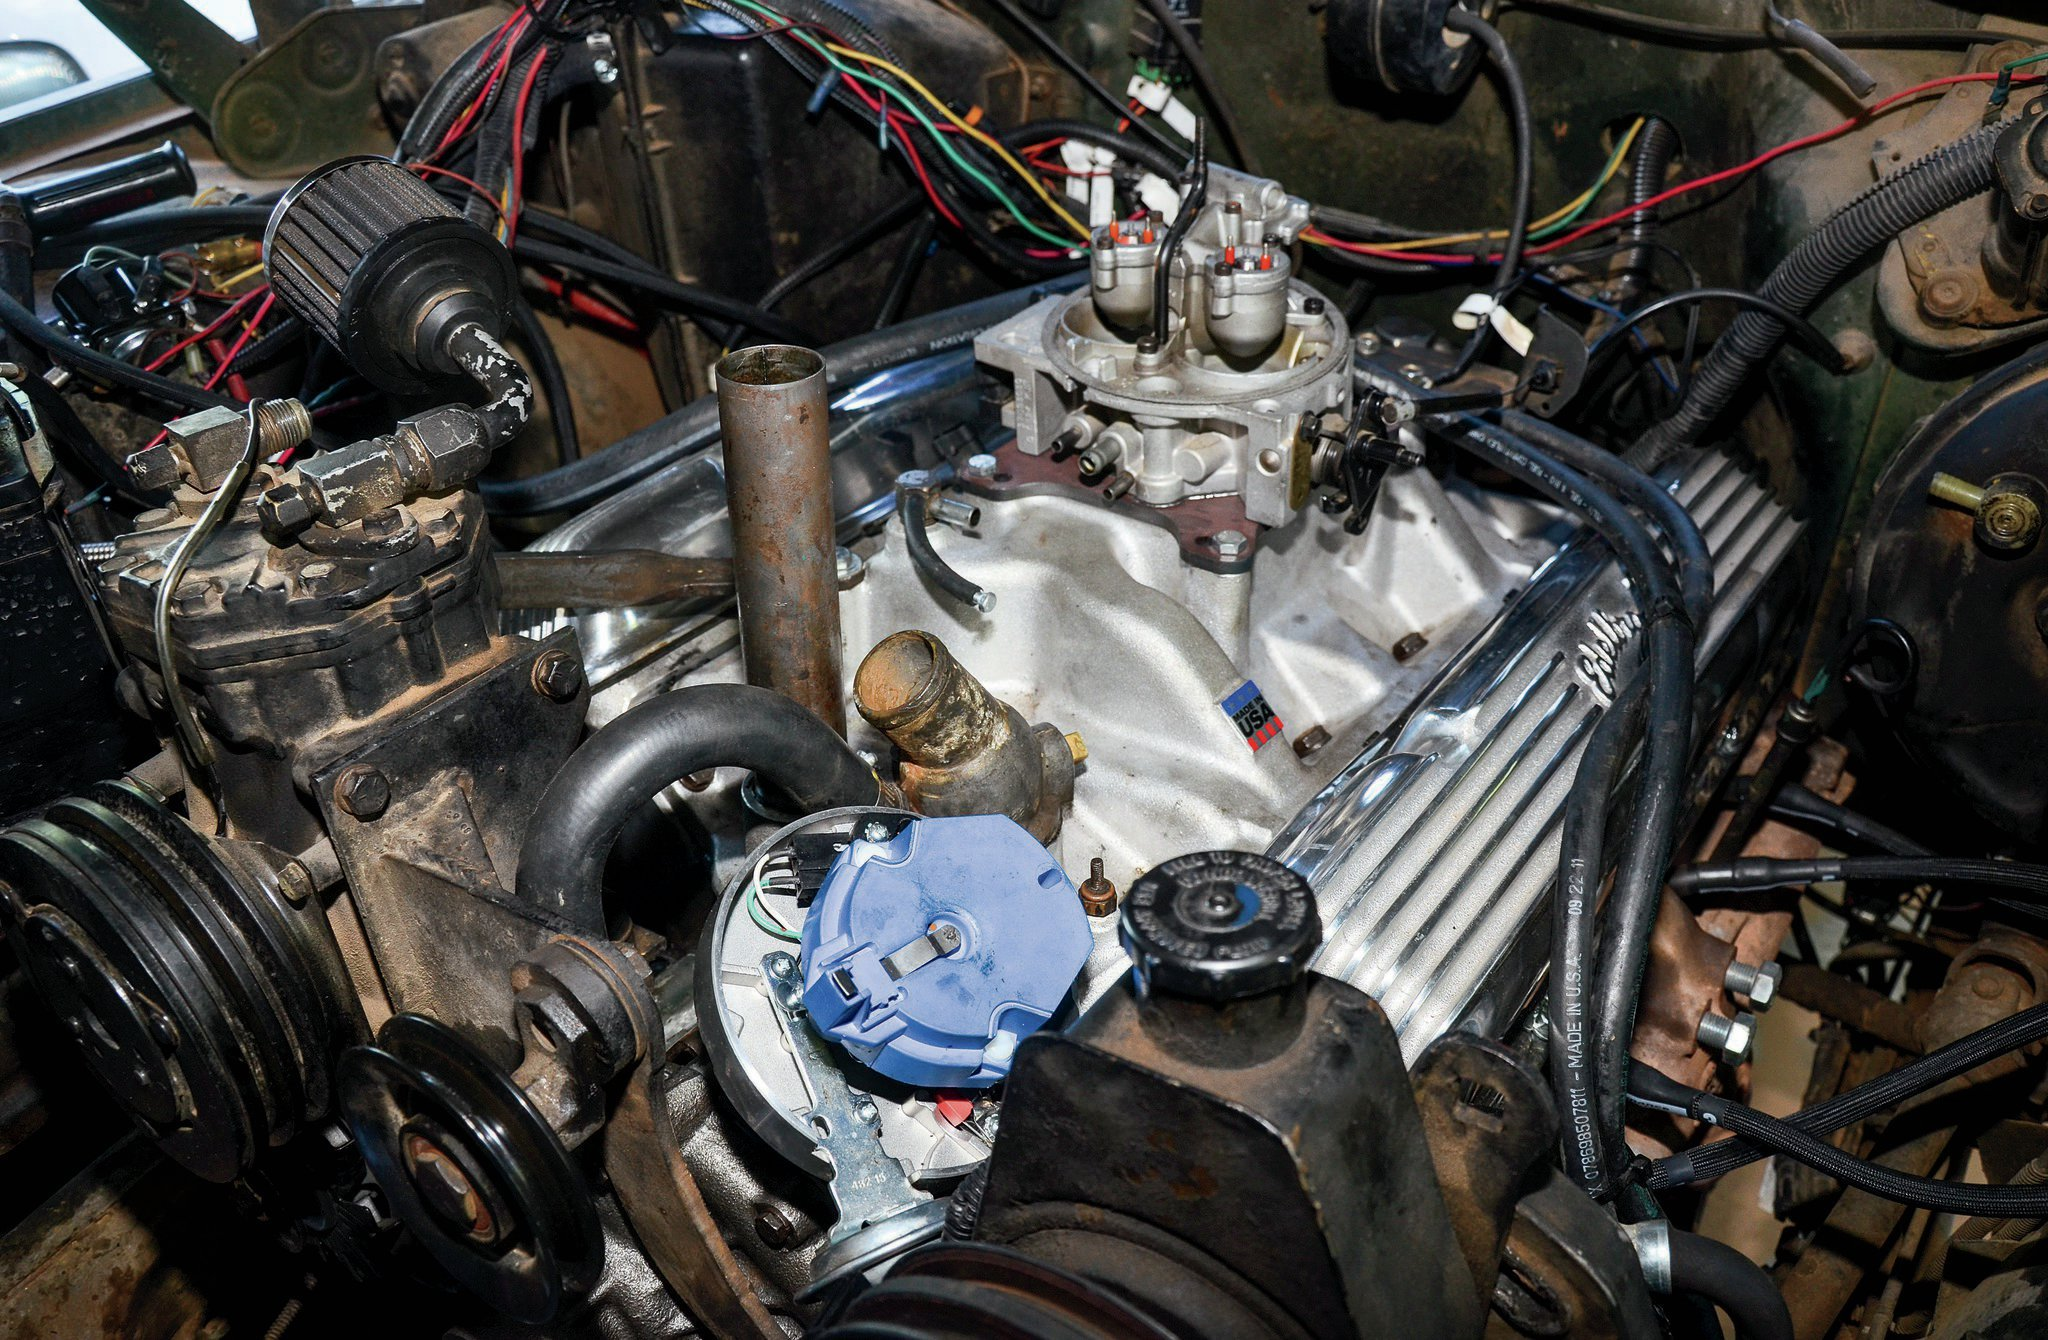 So, not all that happened with the first cam was bad. Sure, we wish it would have worked out fine without all this work, but by god, we now know just how to stab the Davis Unified Ignition distributor in this engine. Also remember to use a manifold vacuum (rather than ported vacuum) source for the distributor's vacuum advance, and don't forget to disconnect and cap this manifold vacuum when setting the initial timing. Edelbrock recommends 10-14 degrees advanced timing with the cam. That's a touch higher than our Howell TBI system recommends, but we will play with it as we put miles on the Jeep.